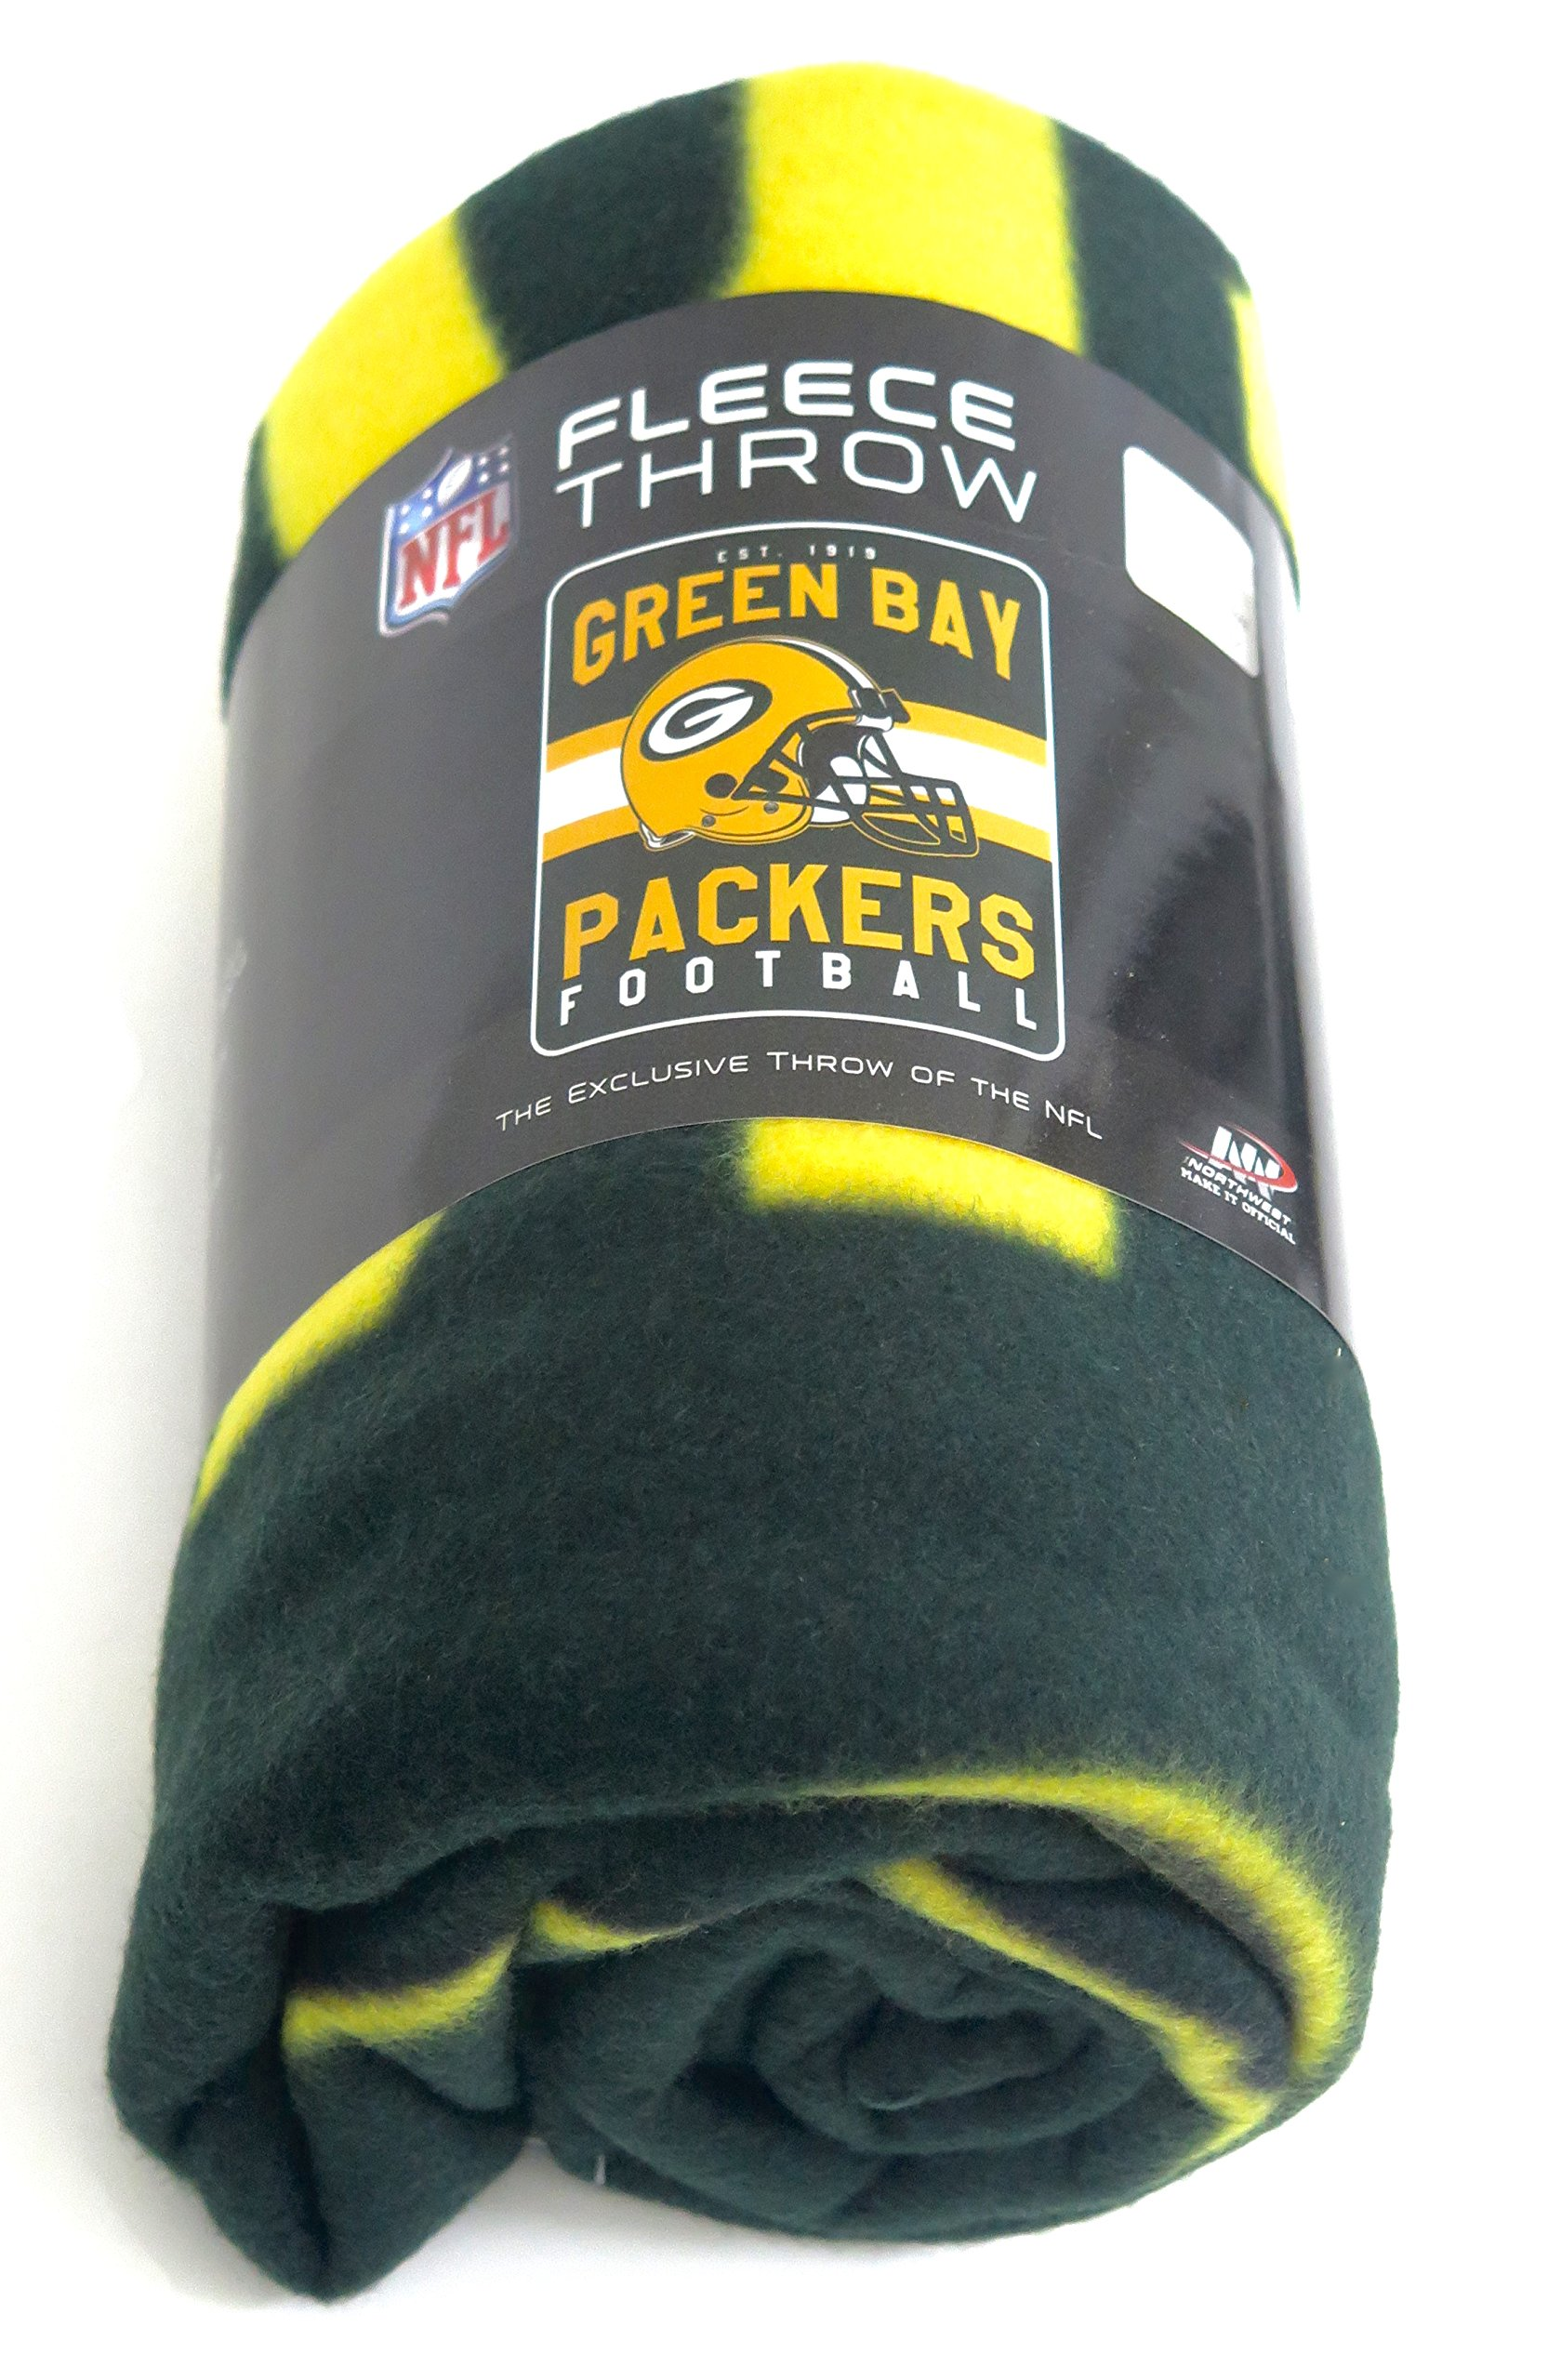 Green Bay Packers Blanket. This soft fleece throw blanket will keep you warm at the game or ar home.